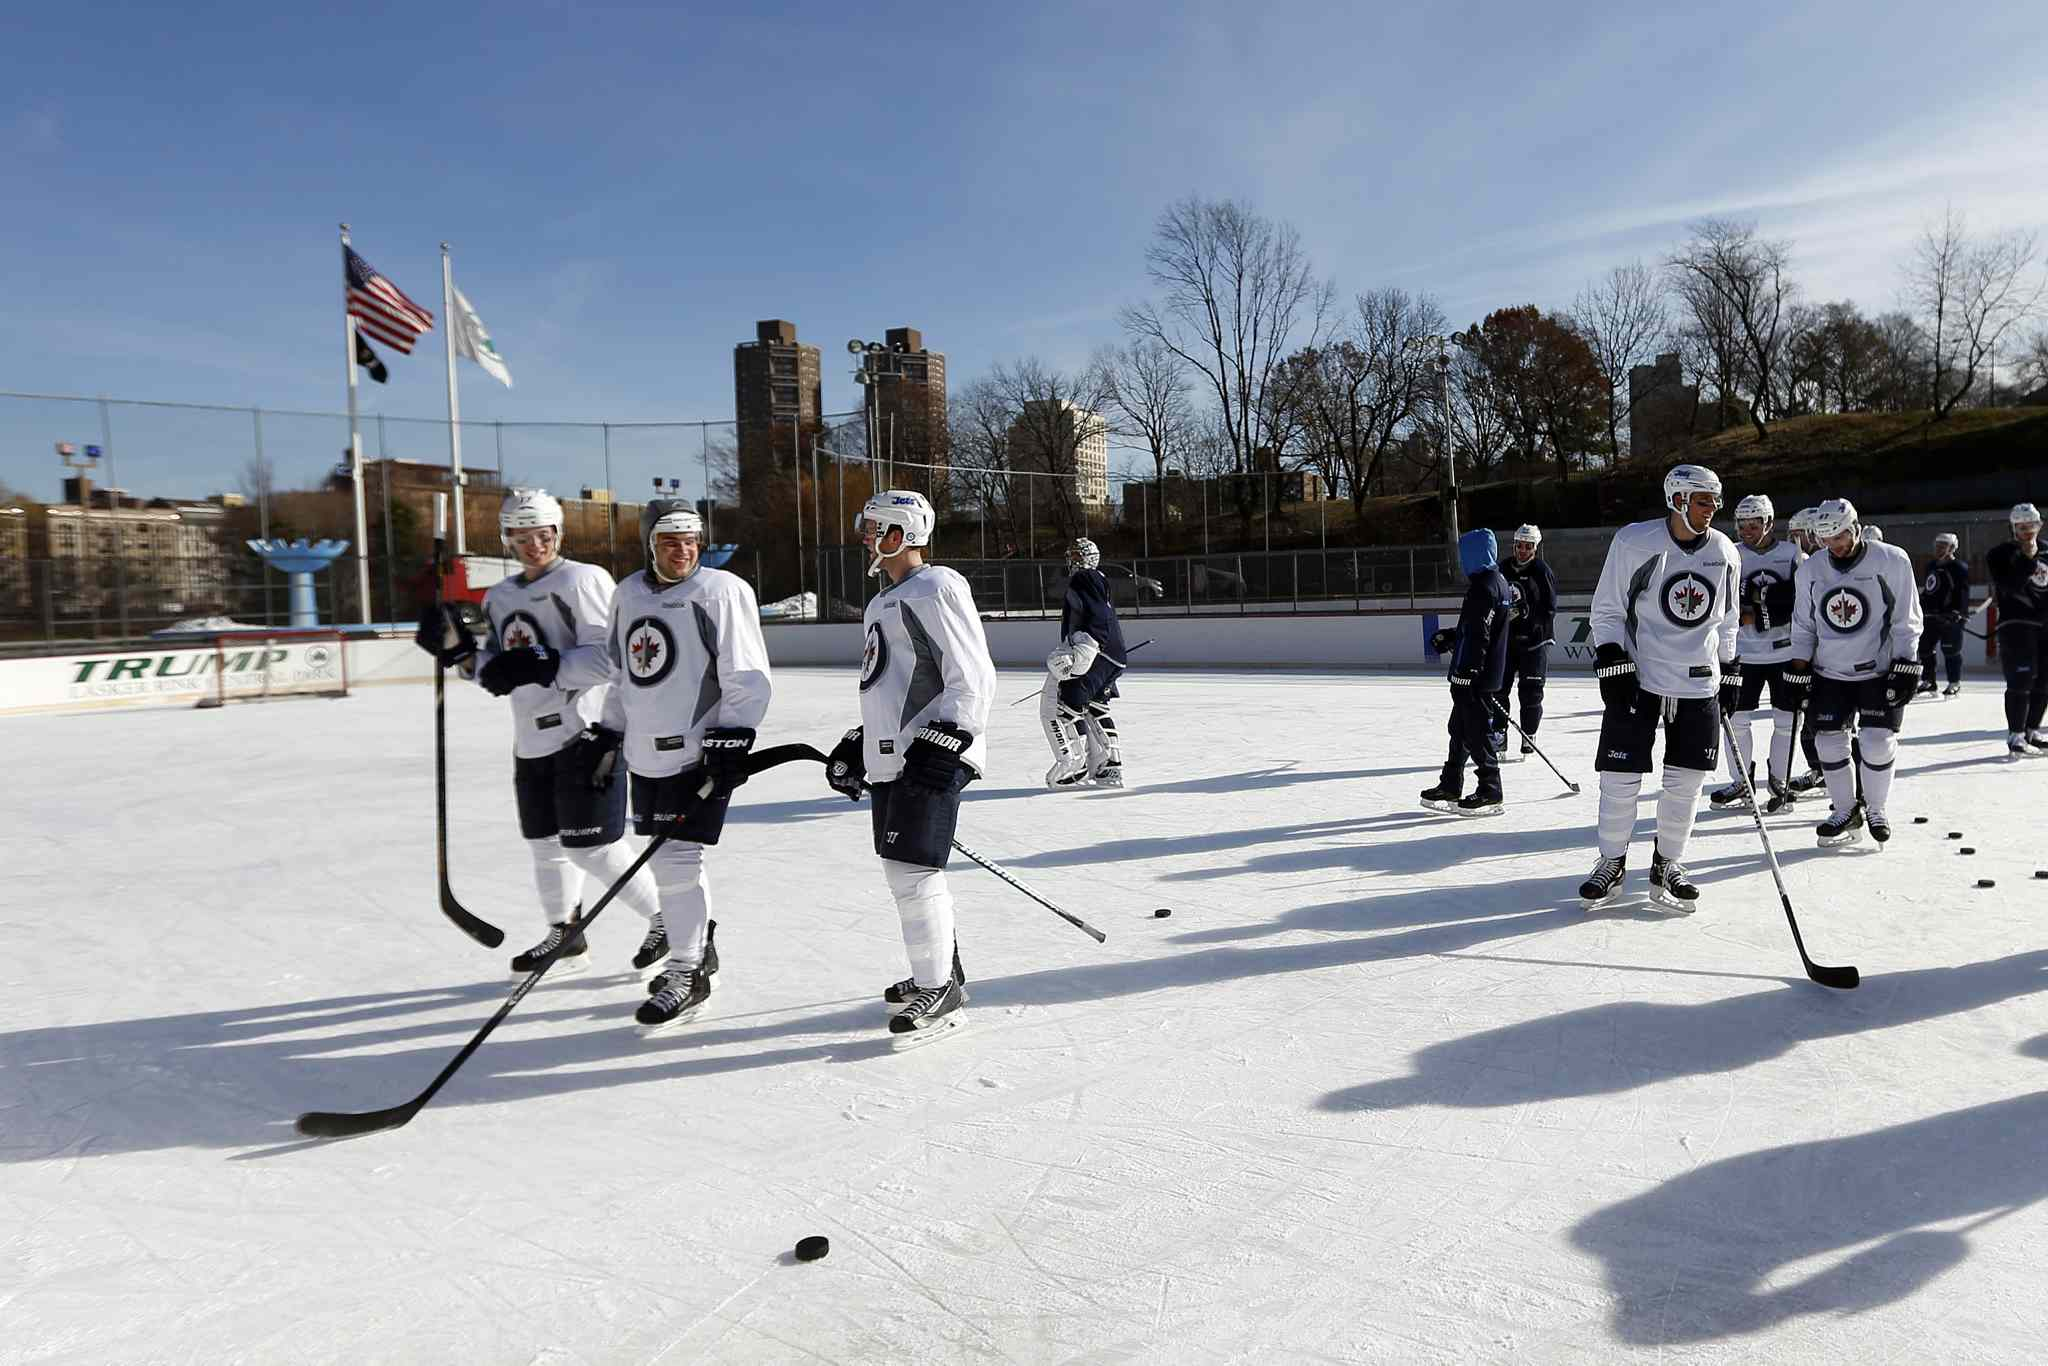 The Winnipeg Jets skate during practice at Lasker Rink in New York's Central Park Saturday.